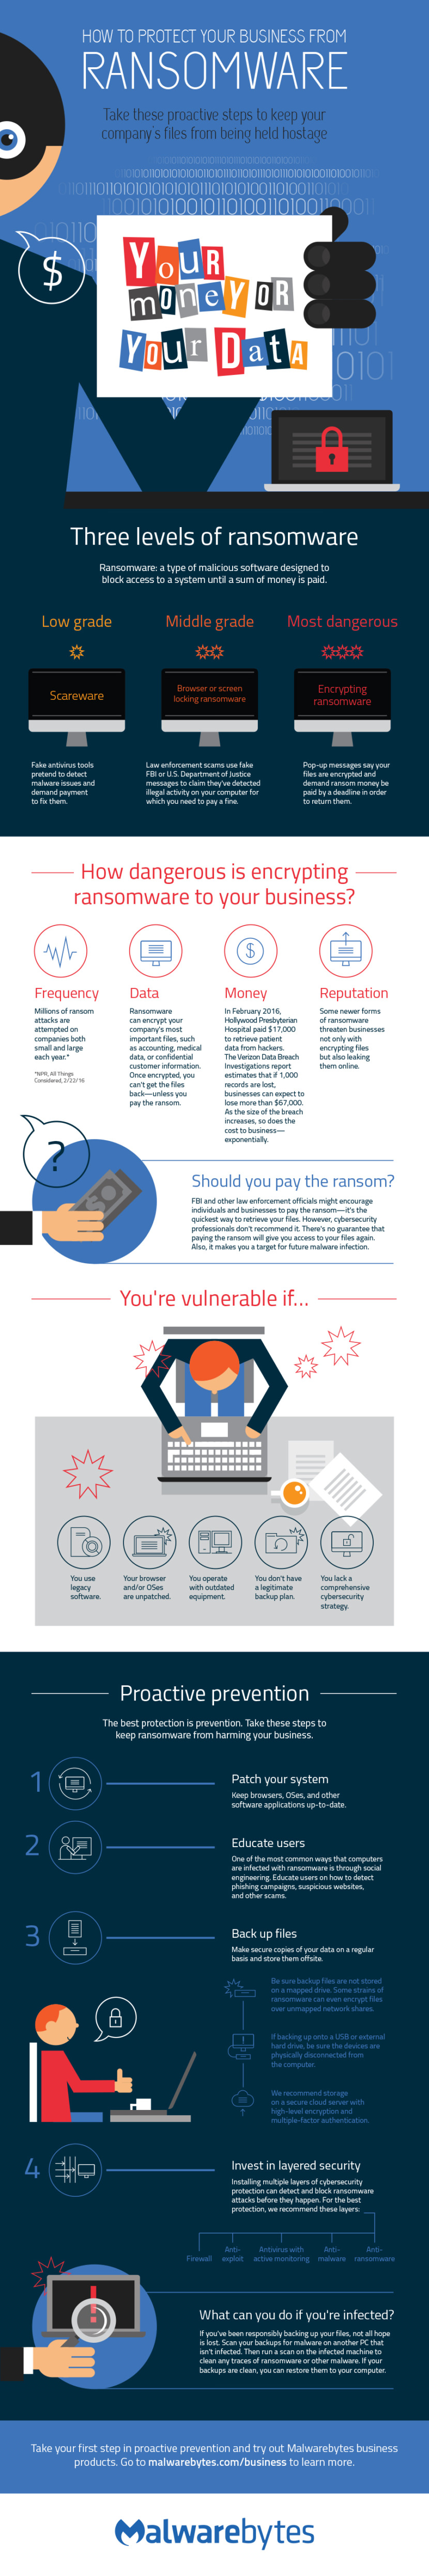 How To Protect Your Business From Ransomware